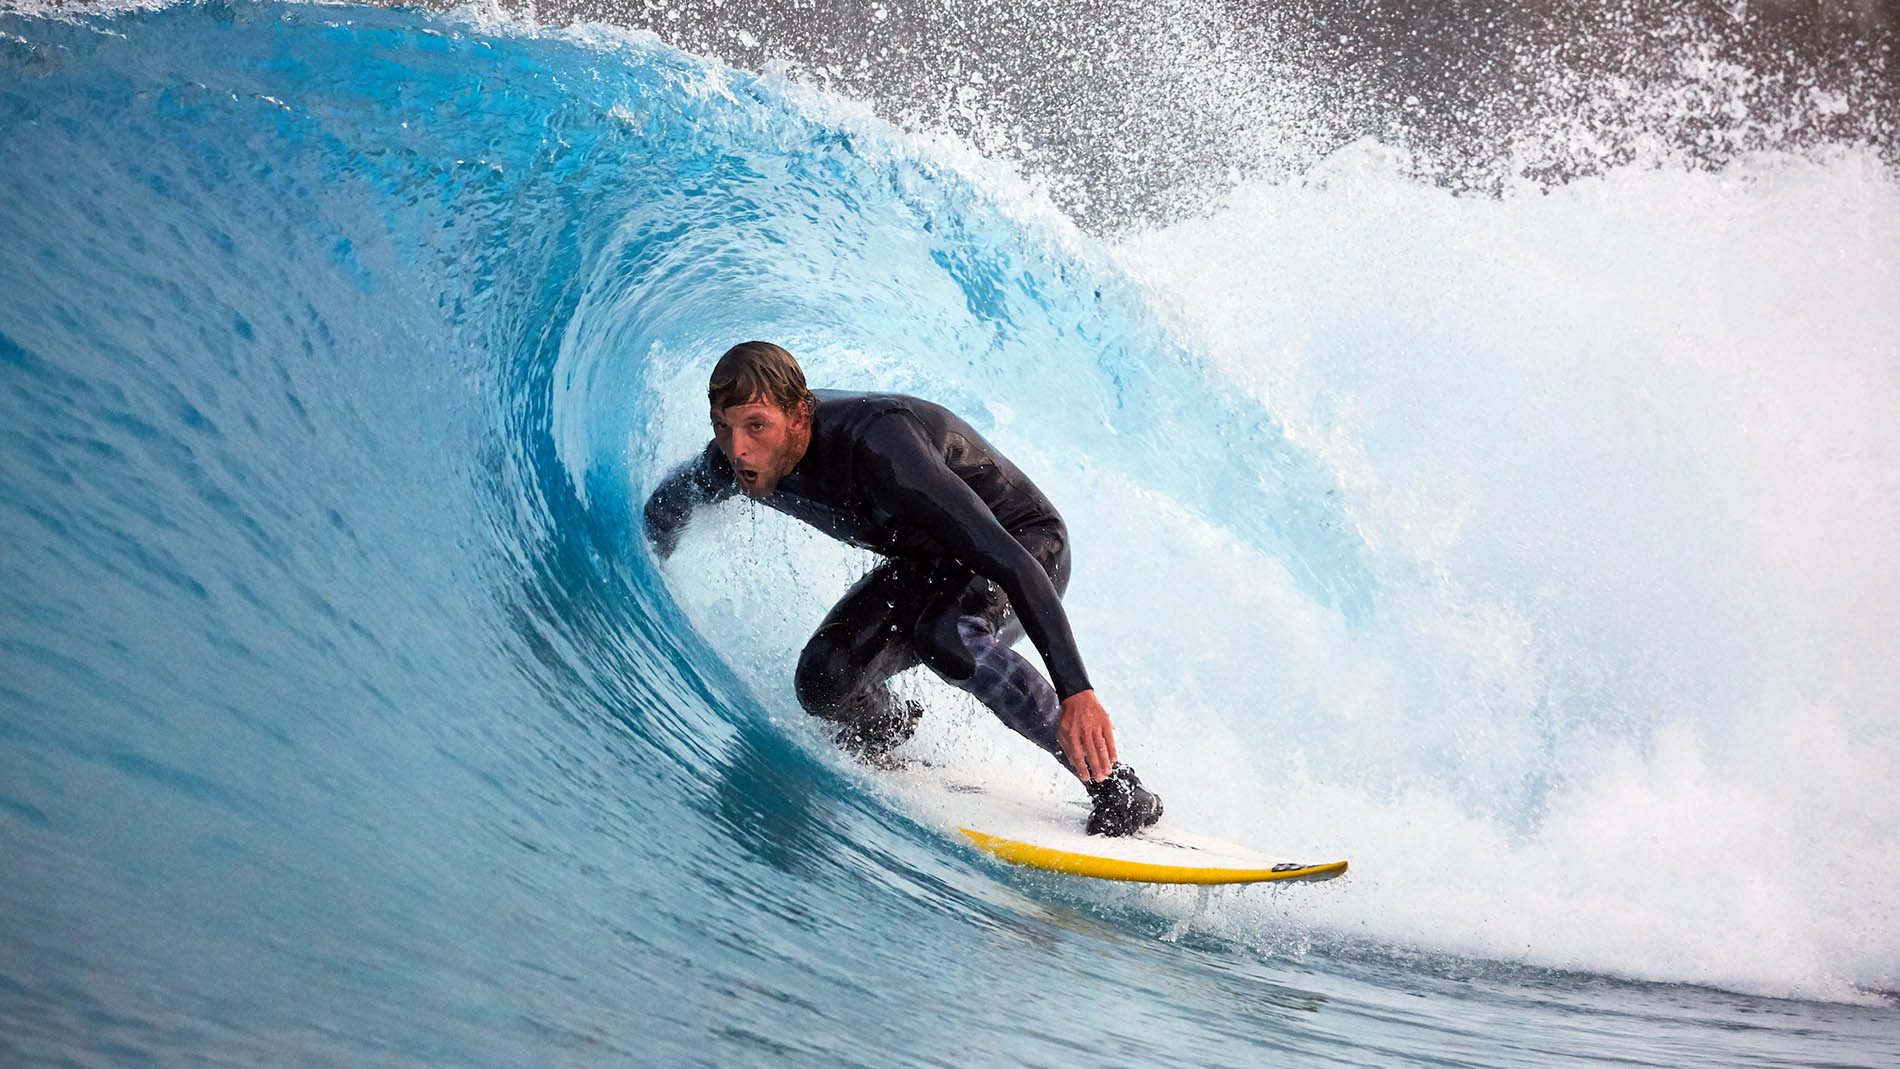 Thomas La Fonta rides Expert wave credit James Owen Image Cabin